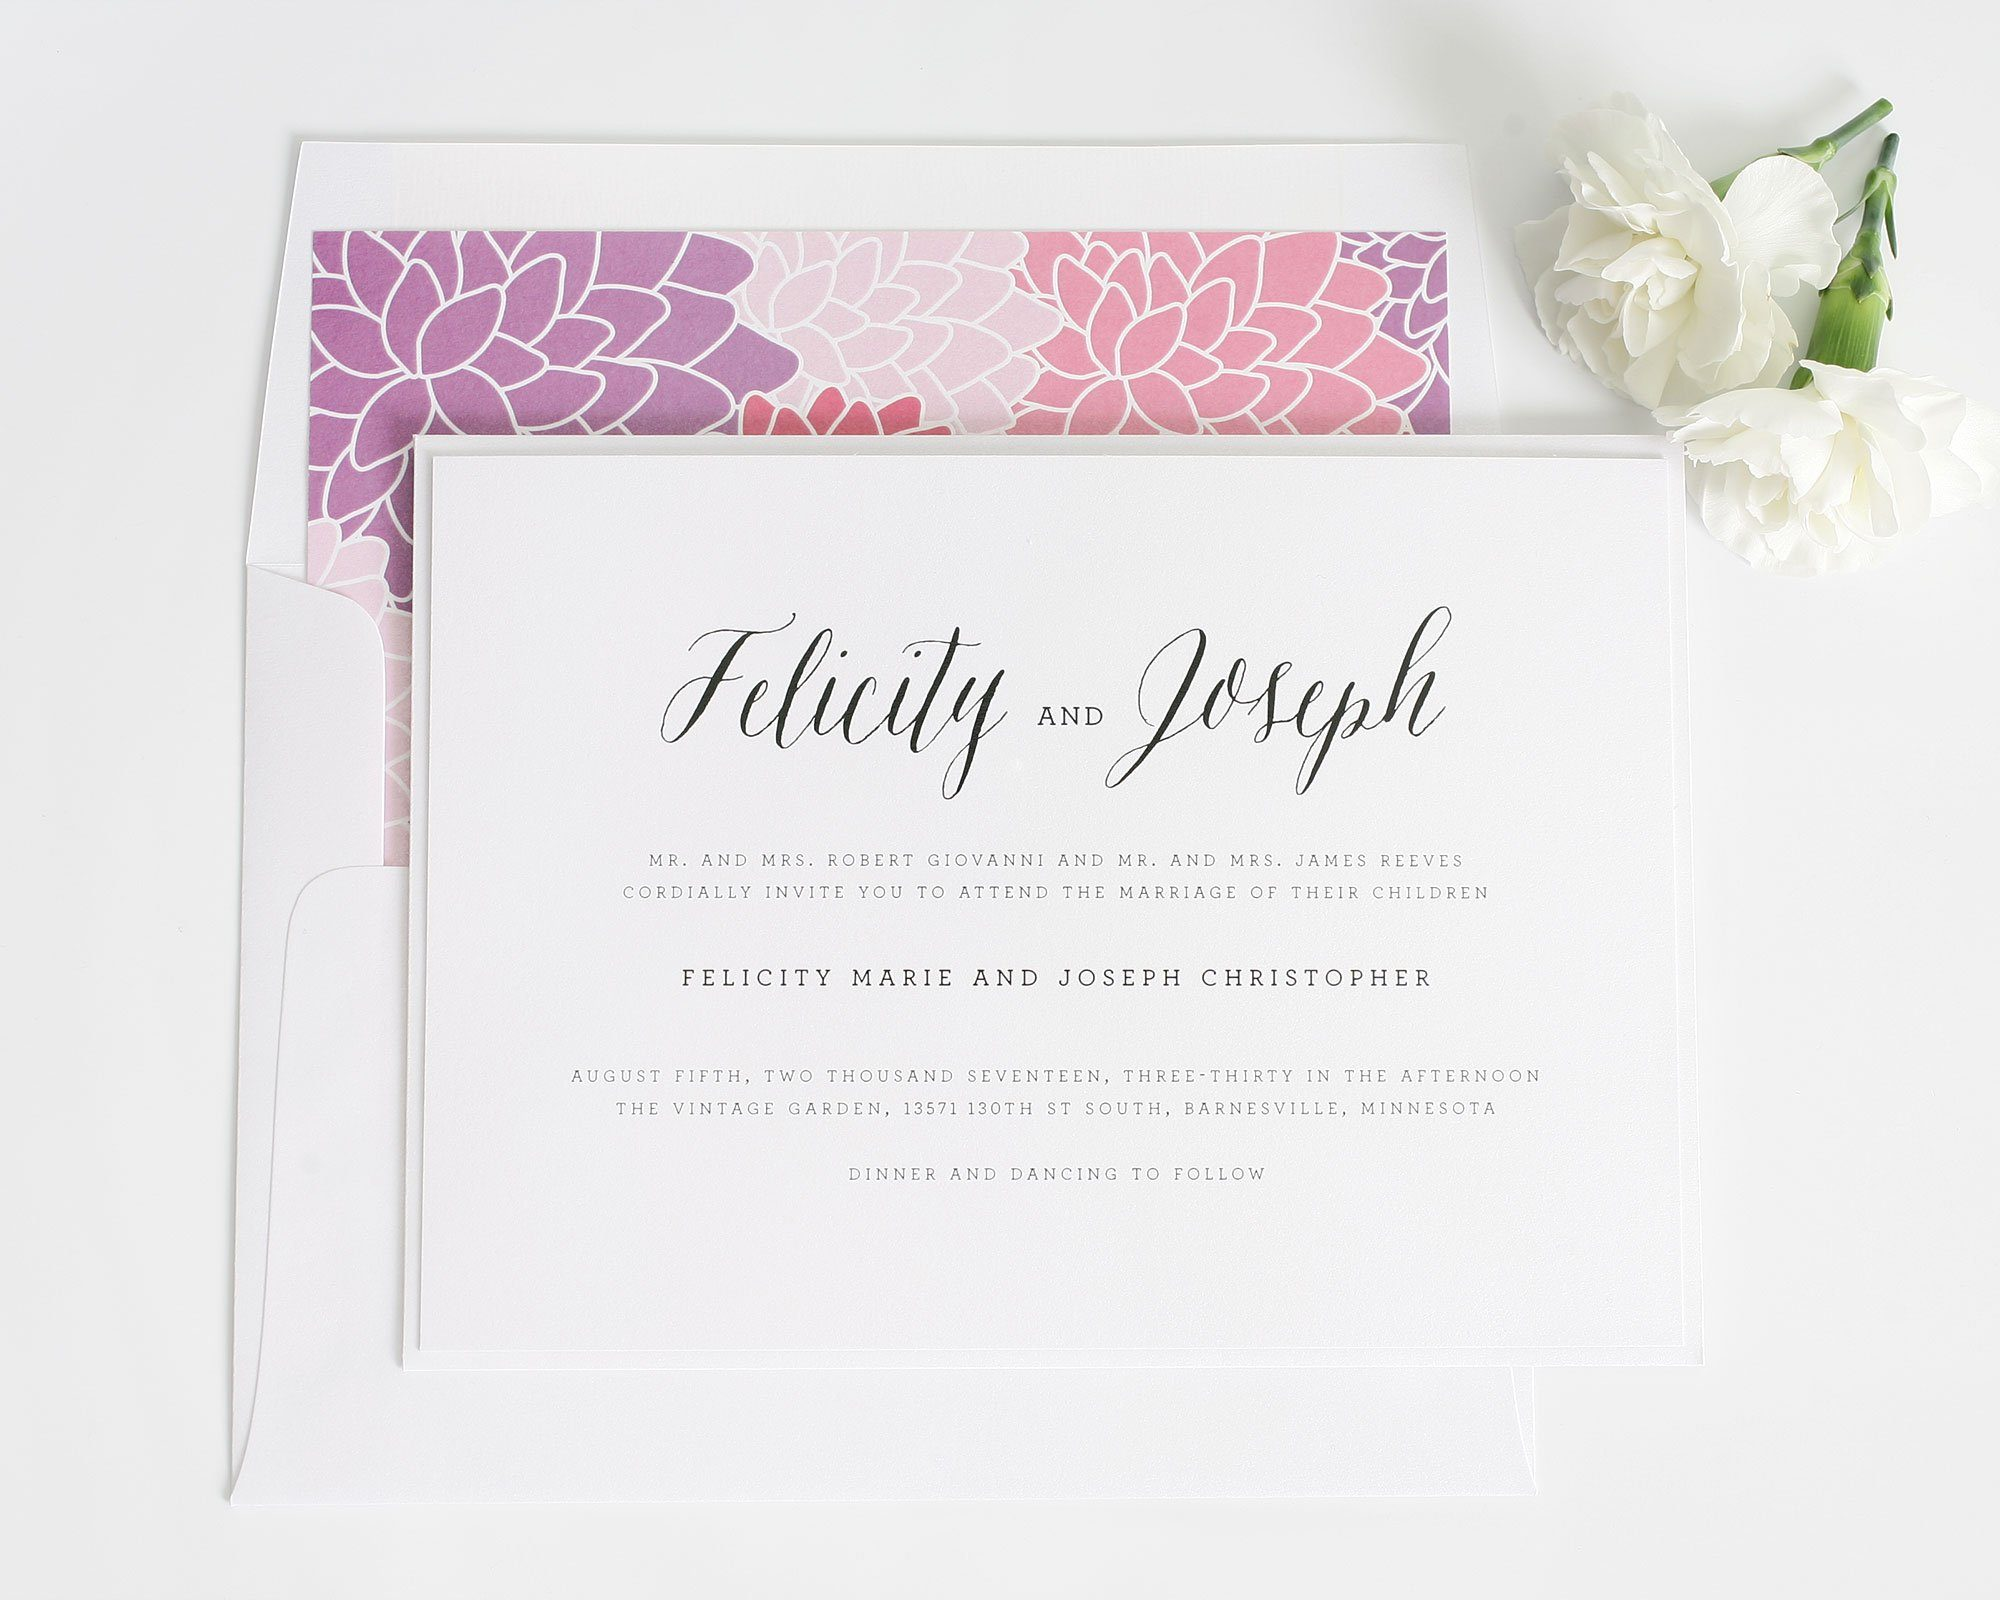 Whimsical Rustic Romance Wedding Invitation With Floral Accents Wedding Invitations